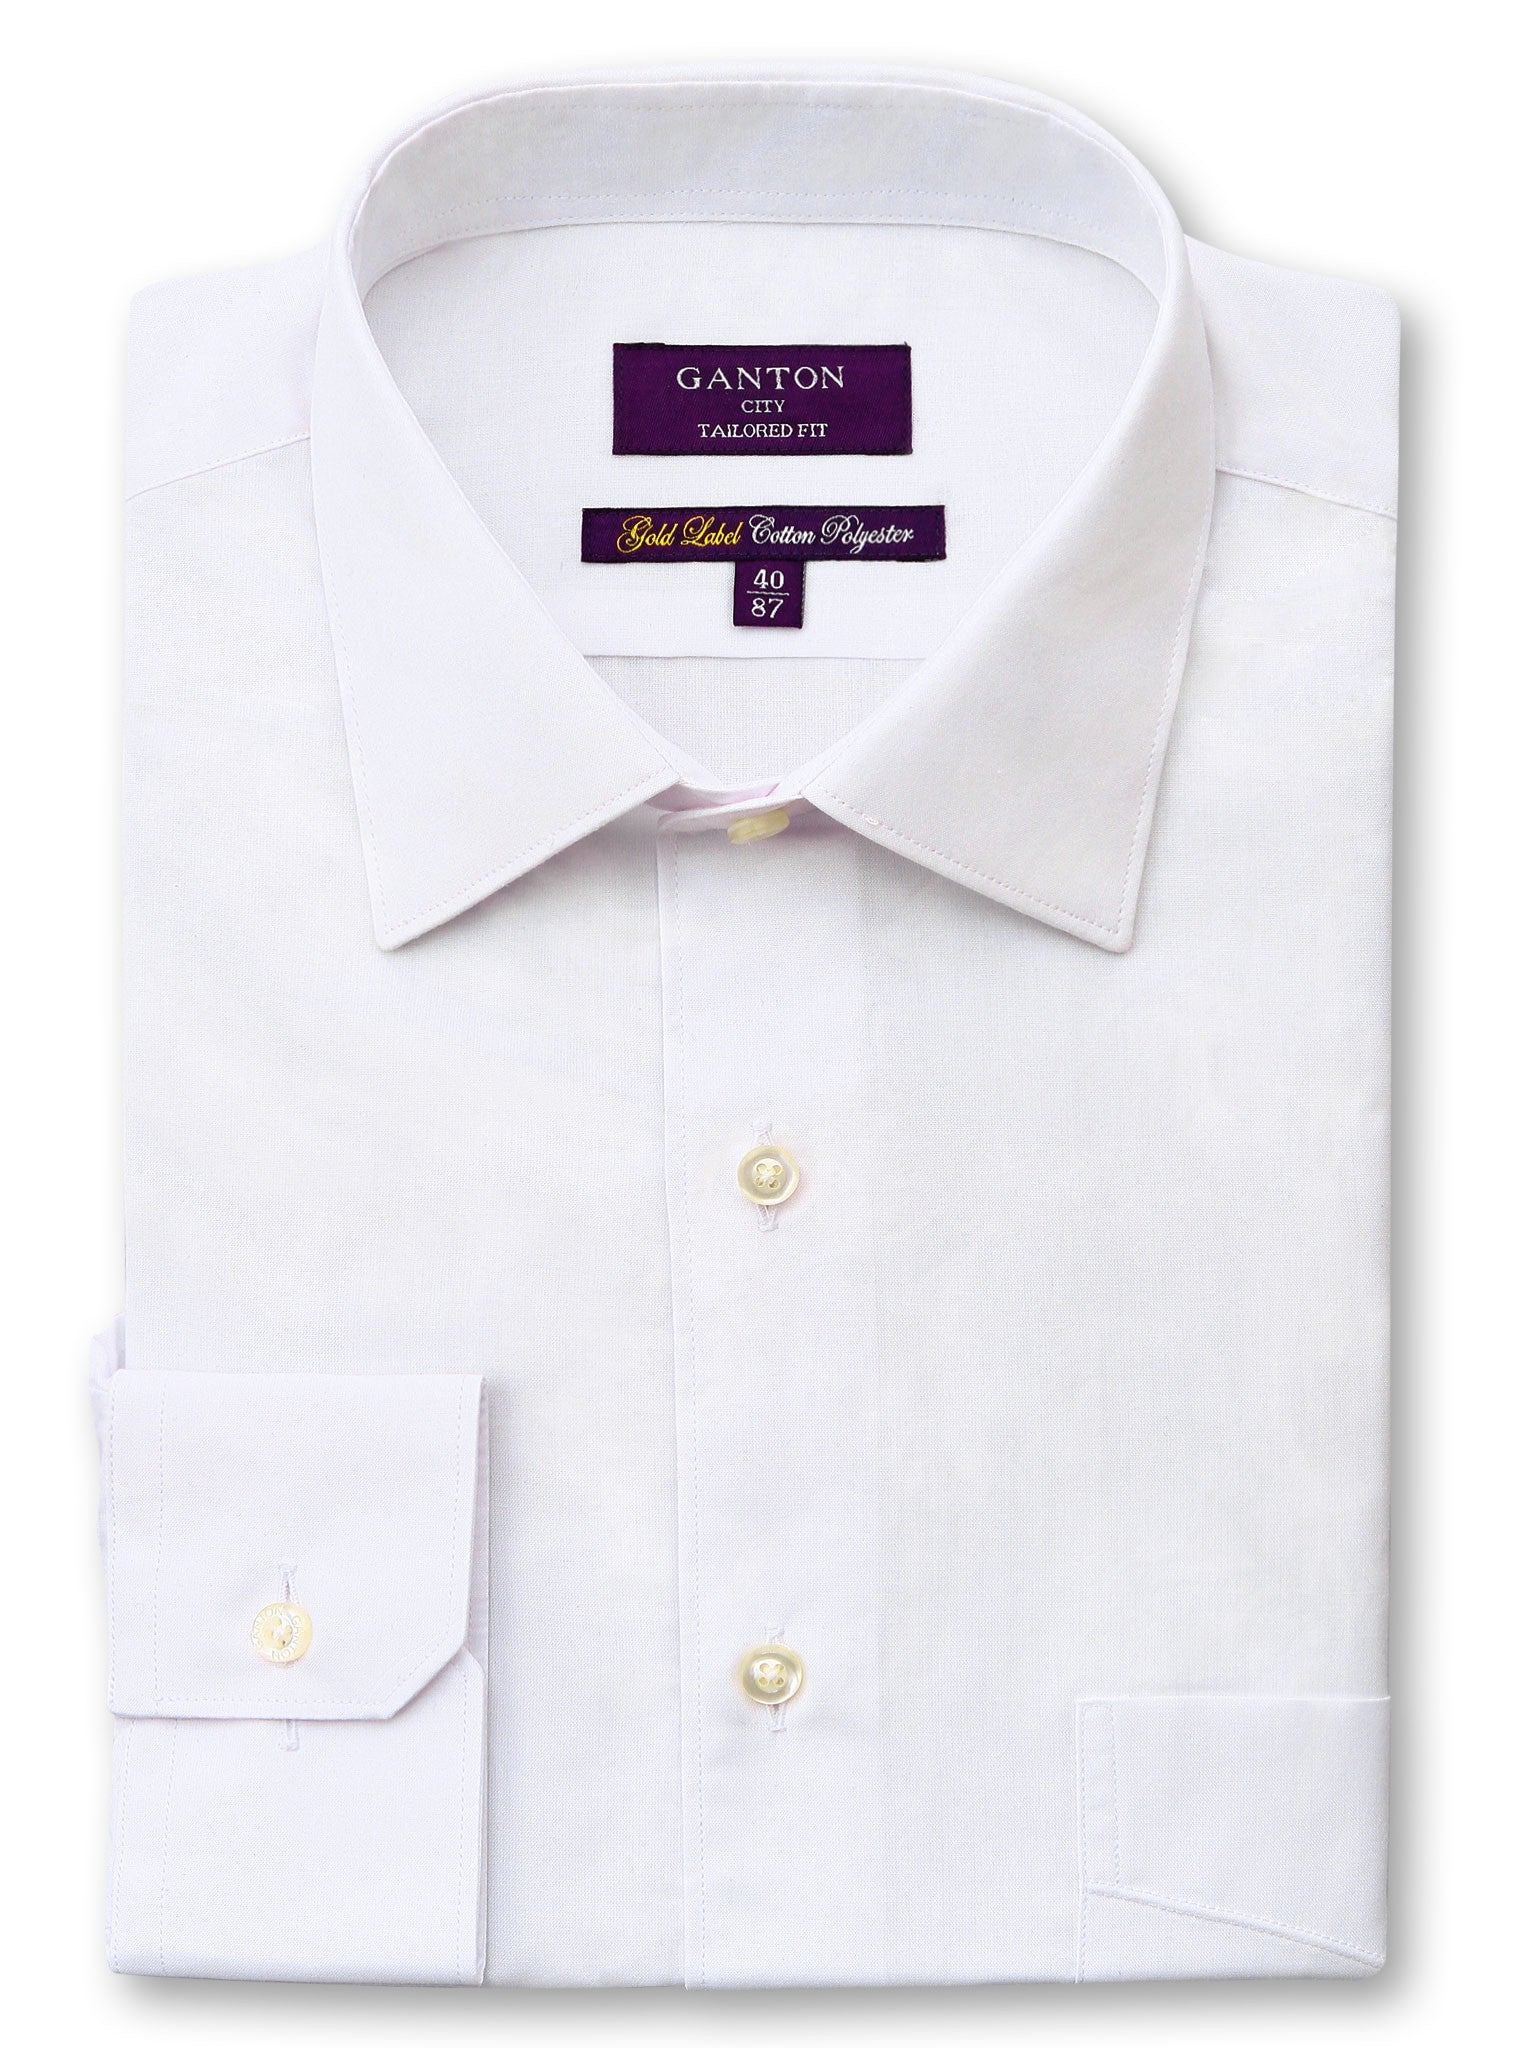 All White Gold Label City Tailored Fit Cotton Polyester Shirt